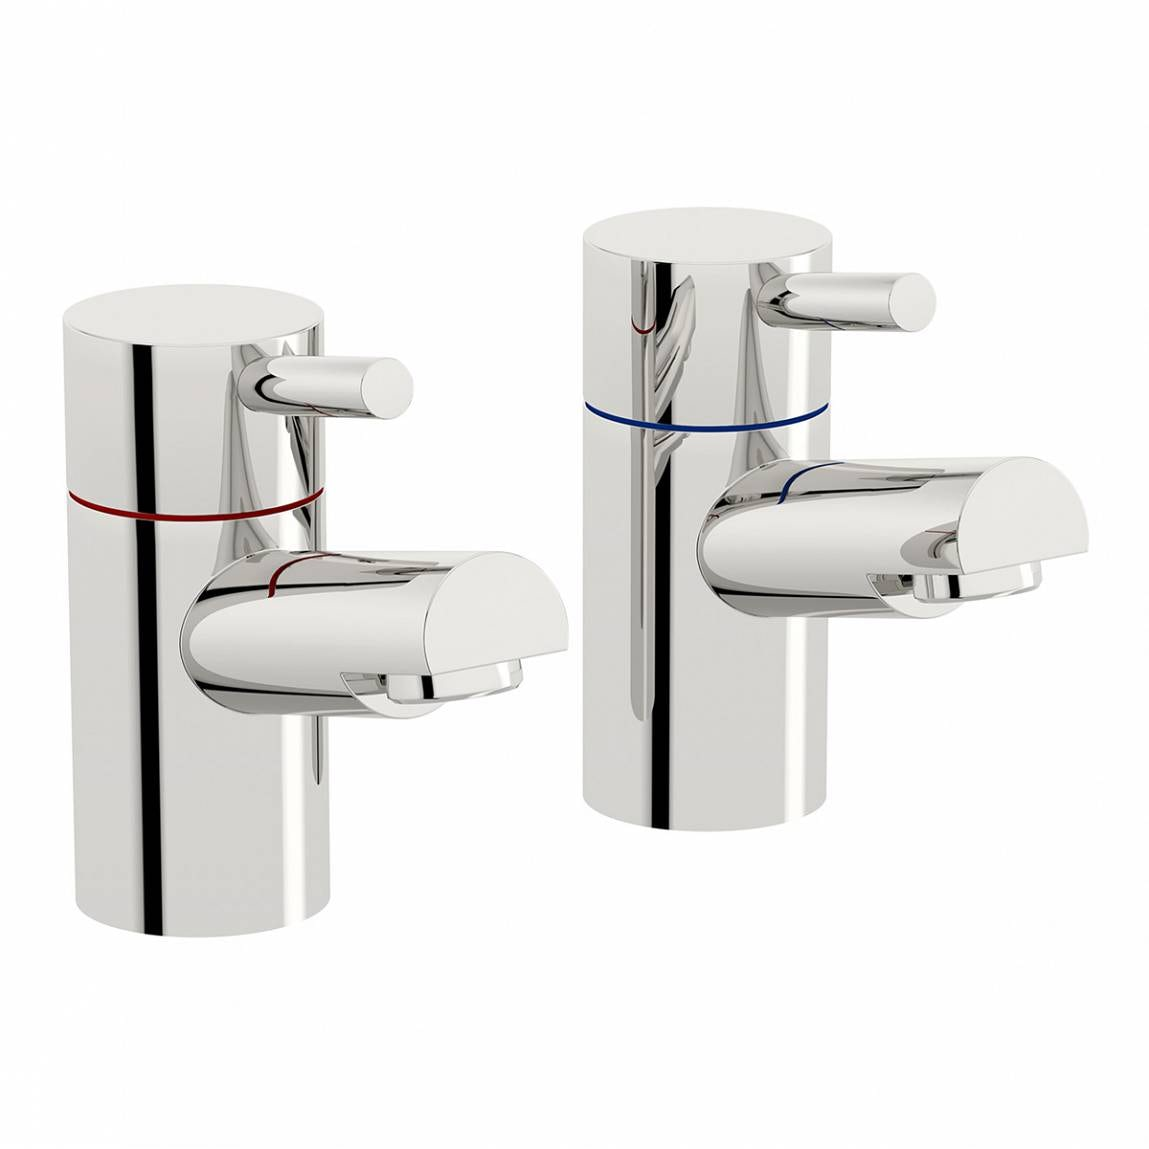 Orchard Wharfe bath pillar taps